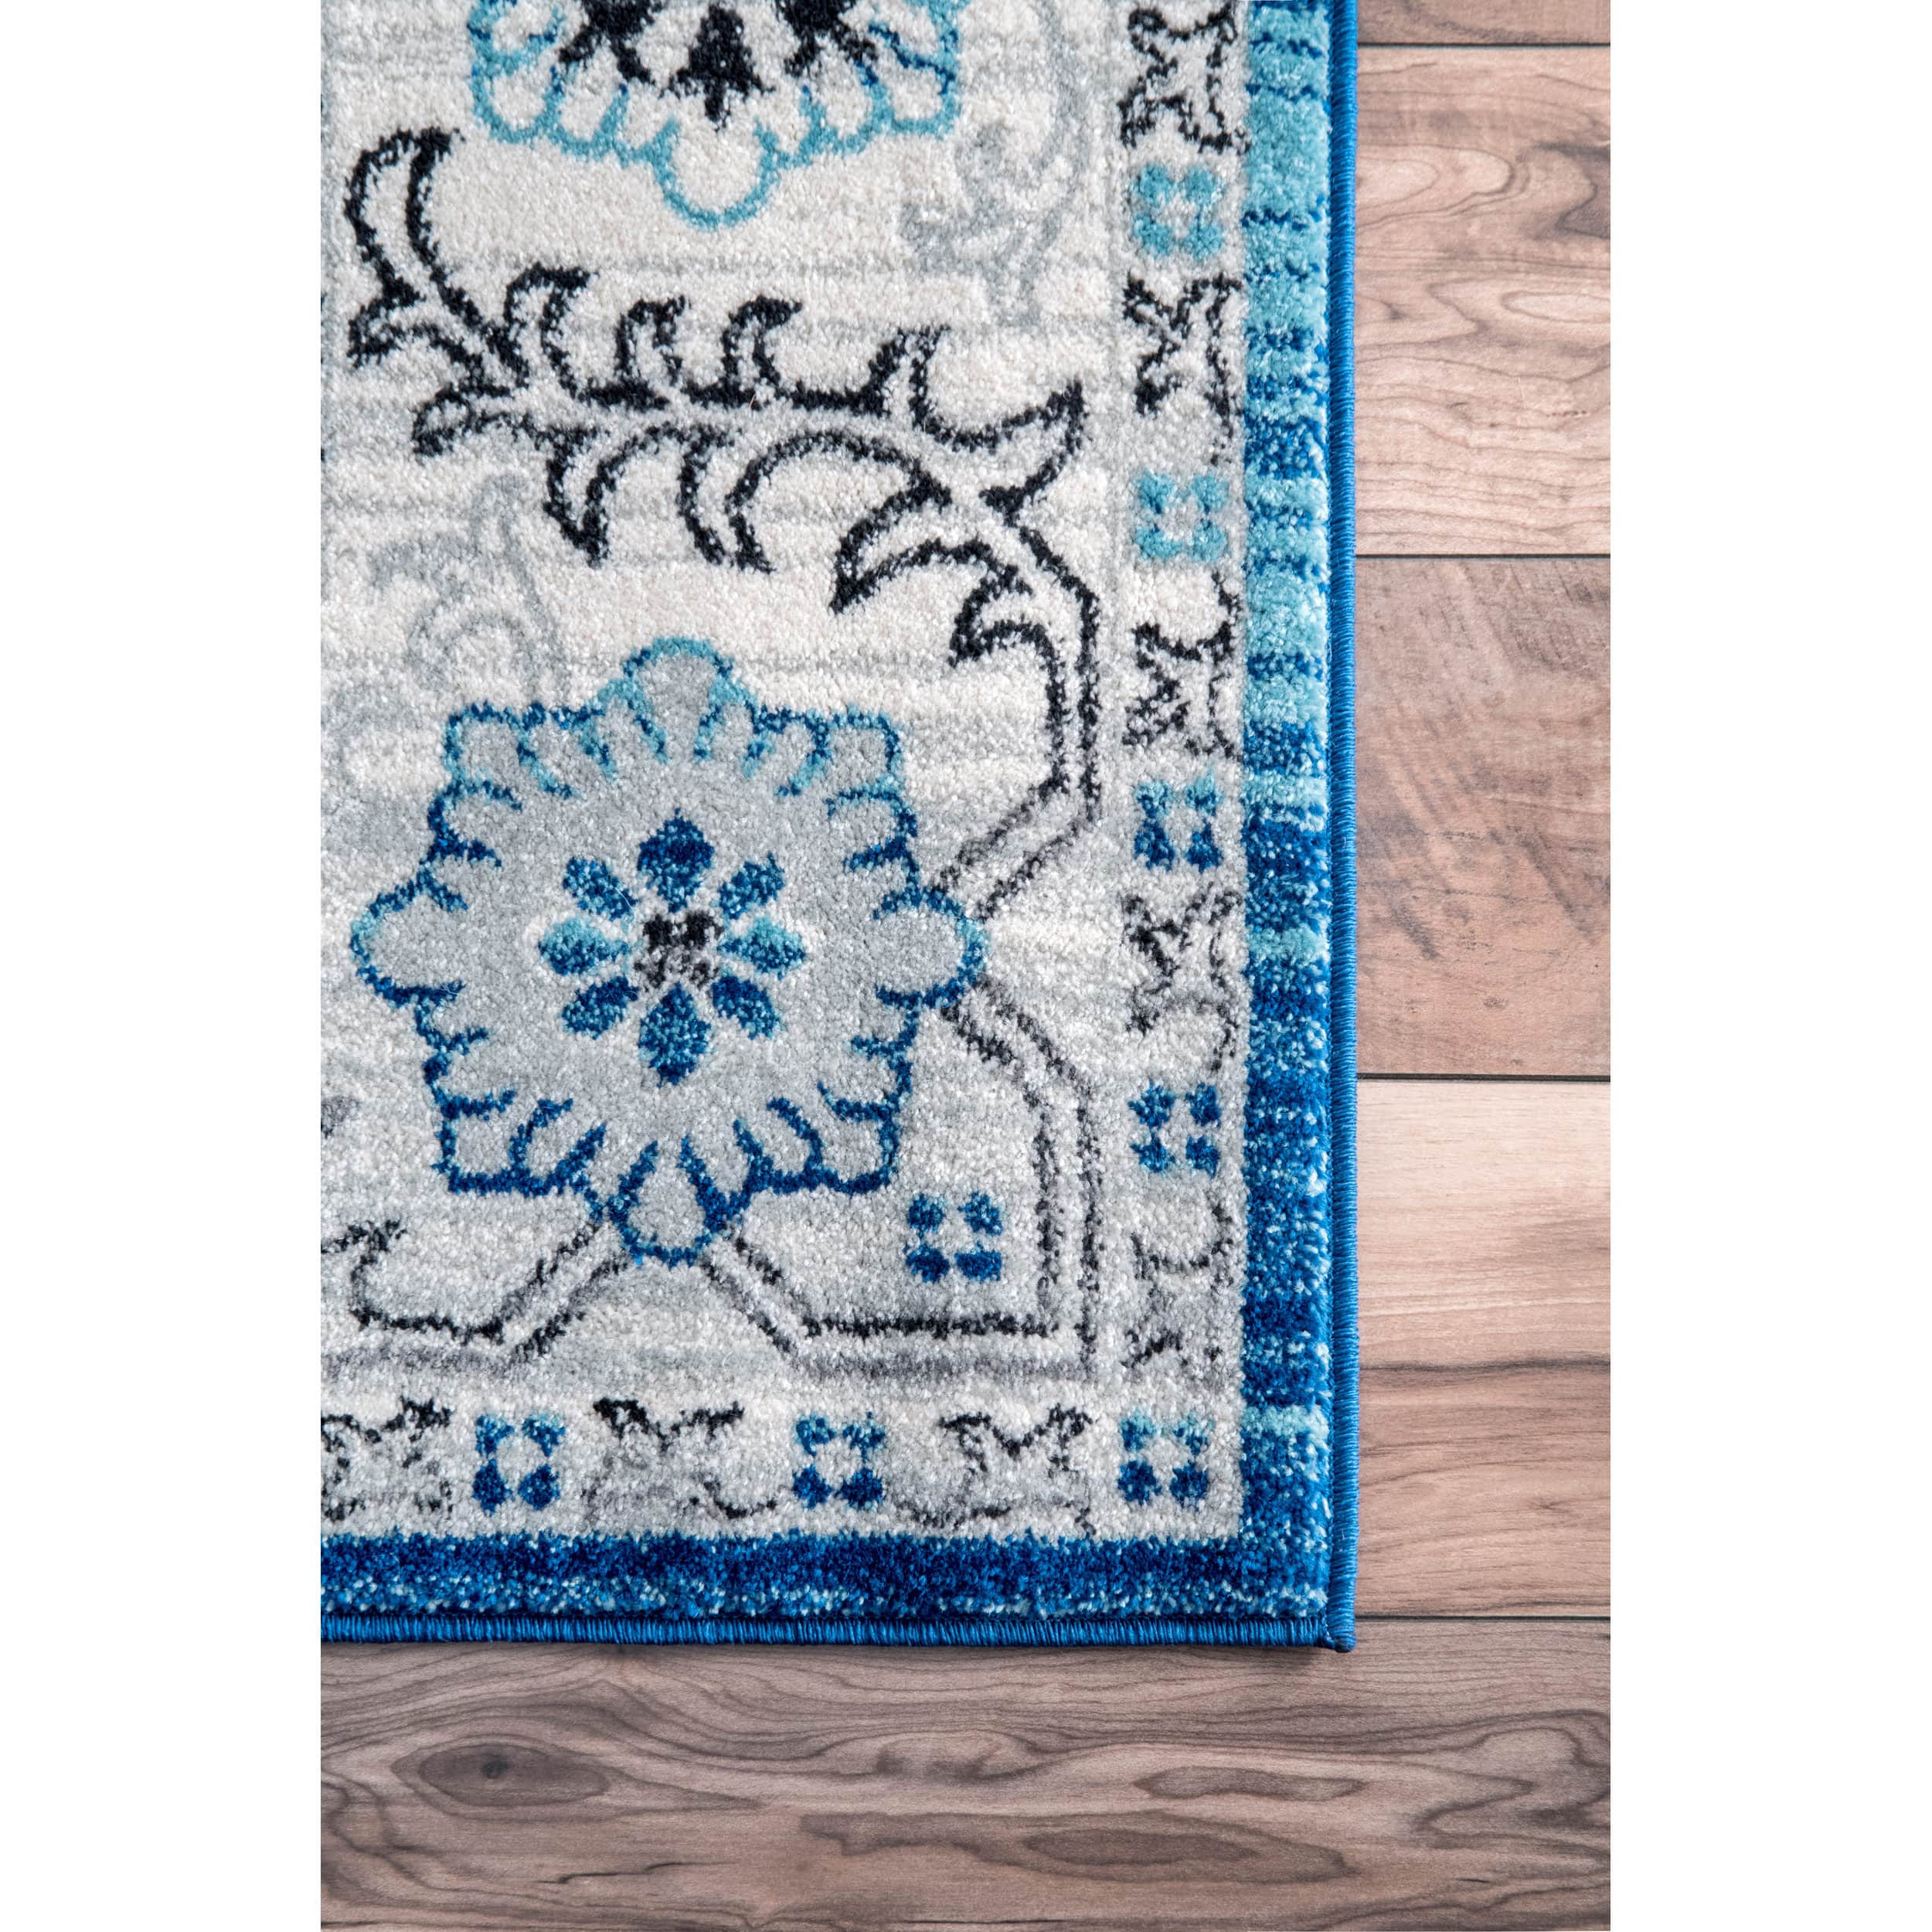 Shop Nuloom Traditional Persian Fancy Aqua Rug: 7x9 - 10x14 Rugs For Less